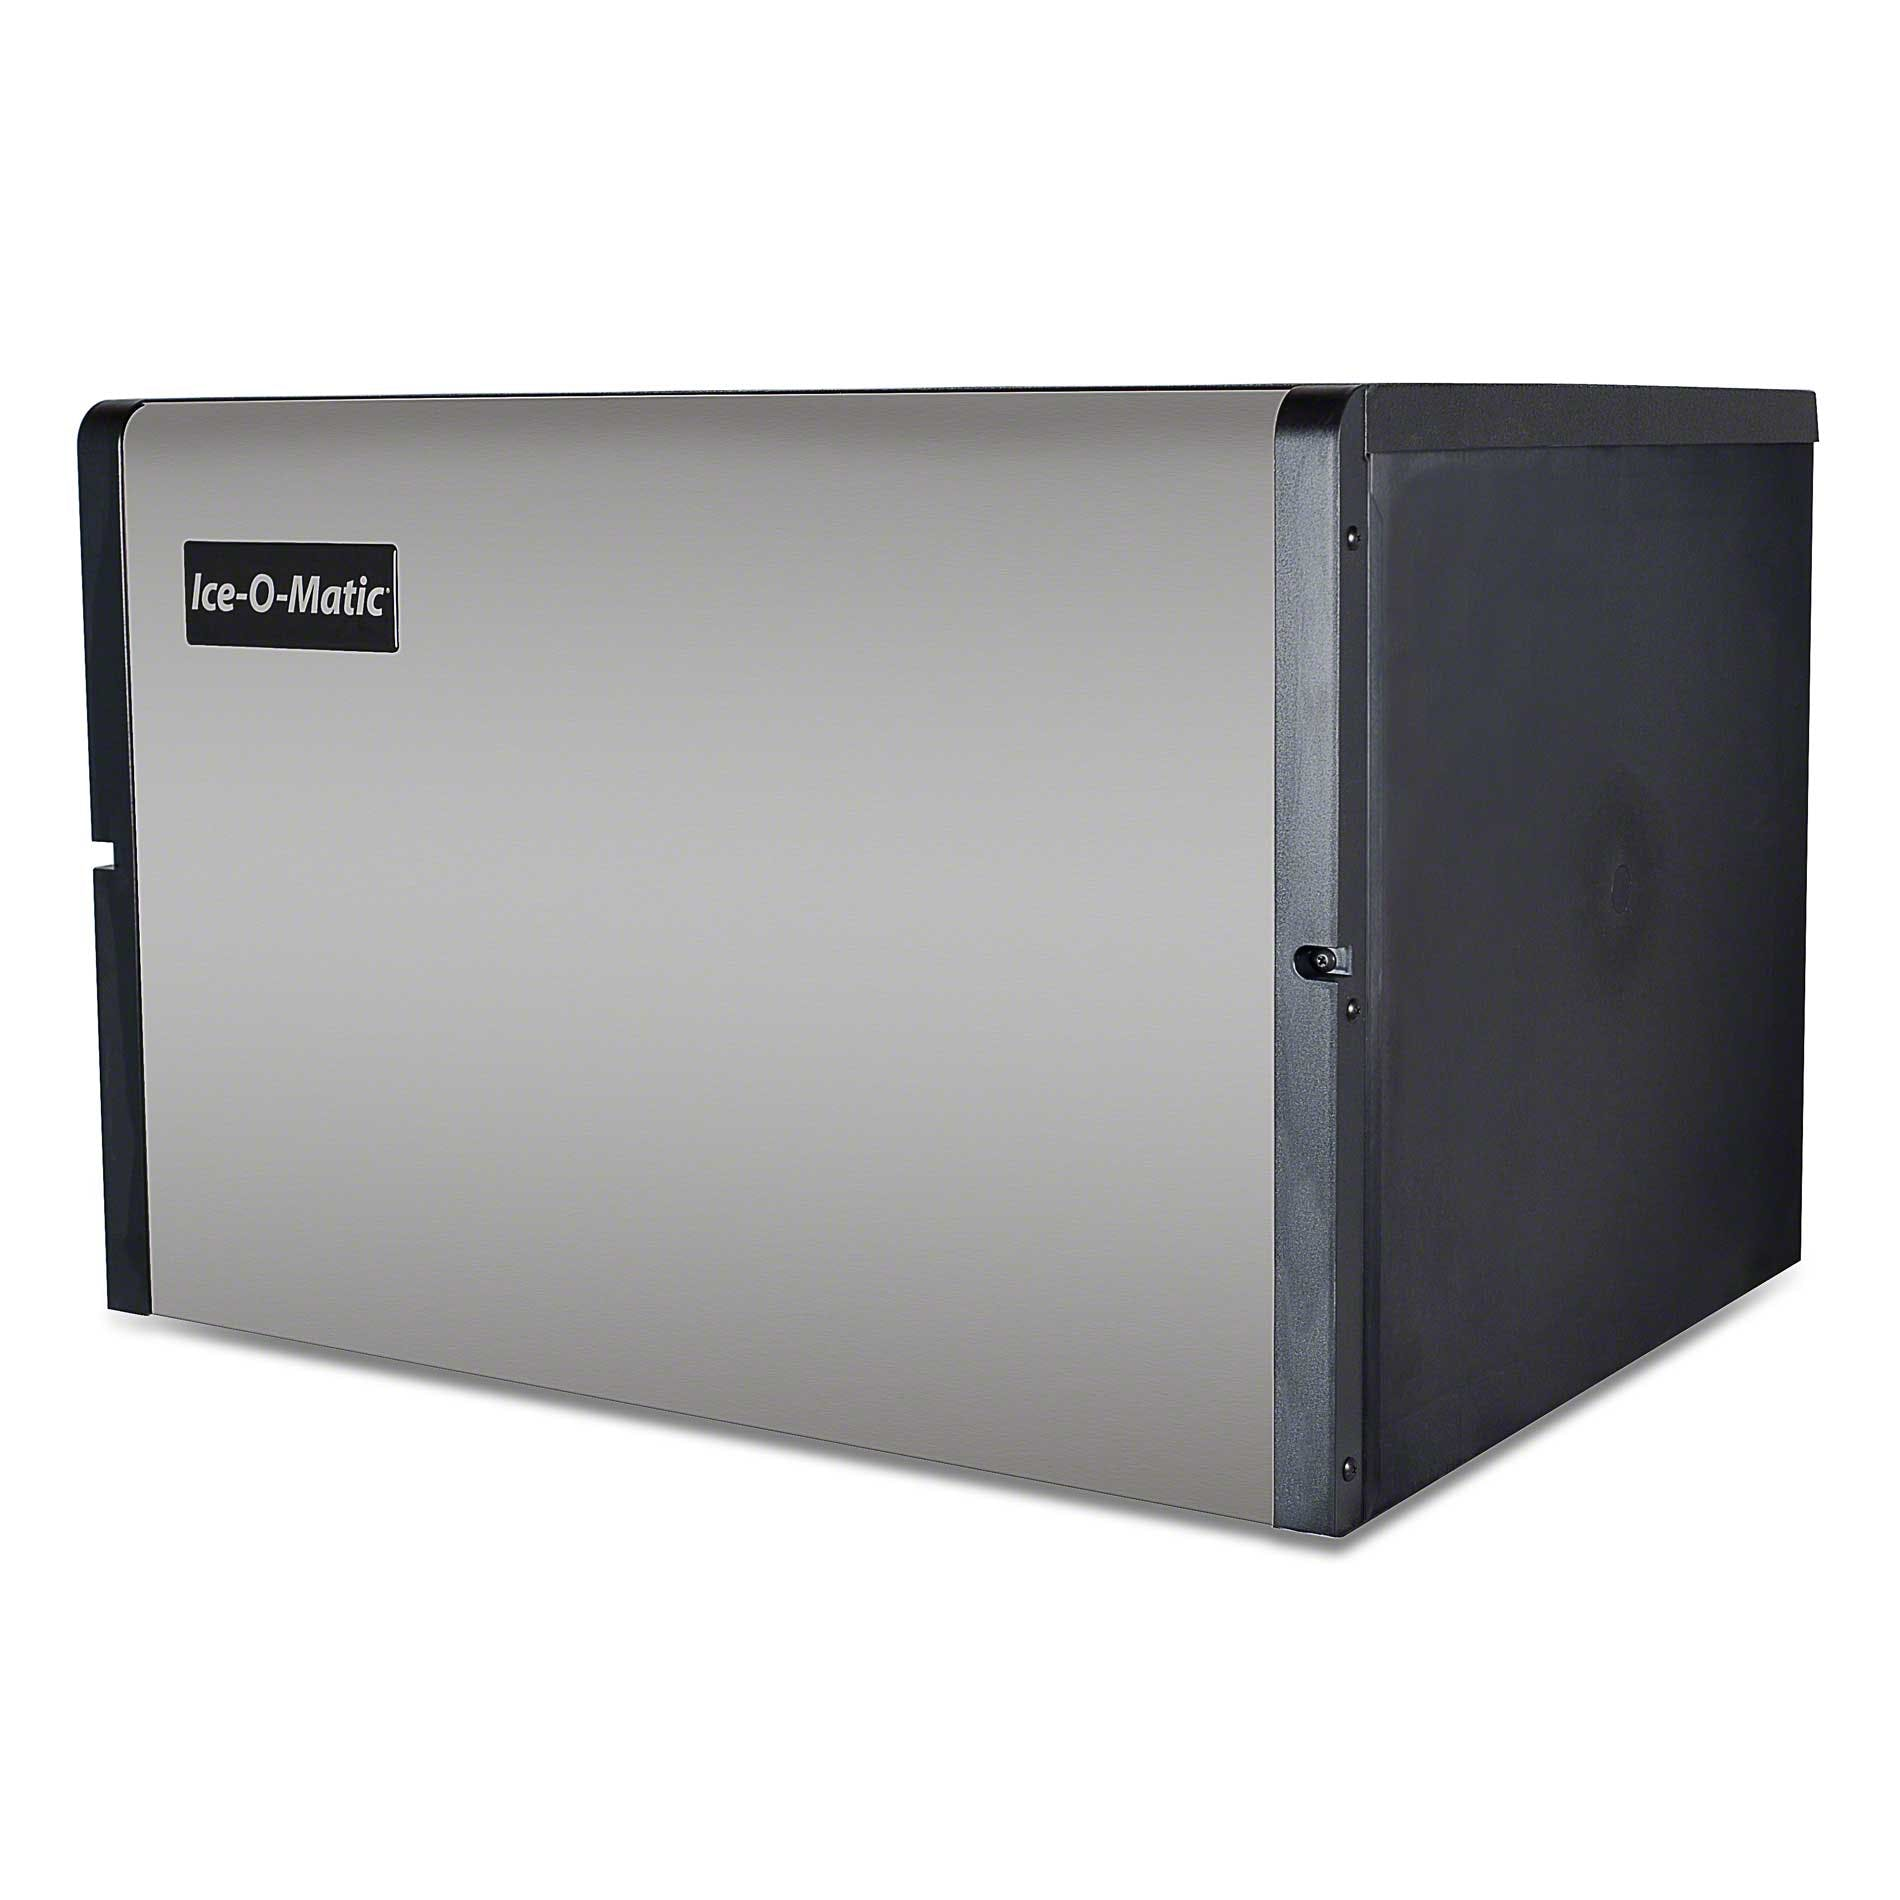 Ice-O-Matic - ICE0500FT 586 lb Full Cube Ice Machine Ice machine sold by Food Service Warehouse